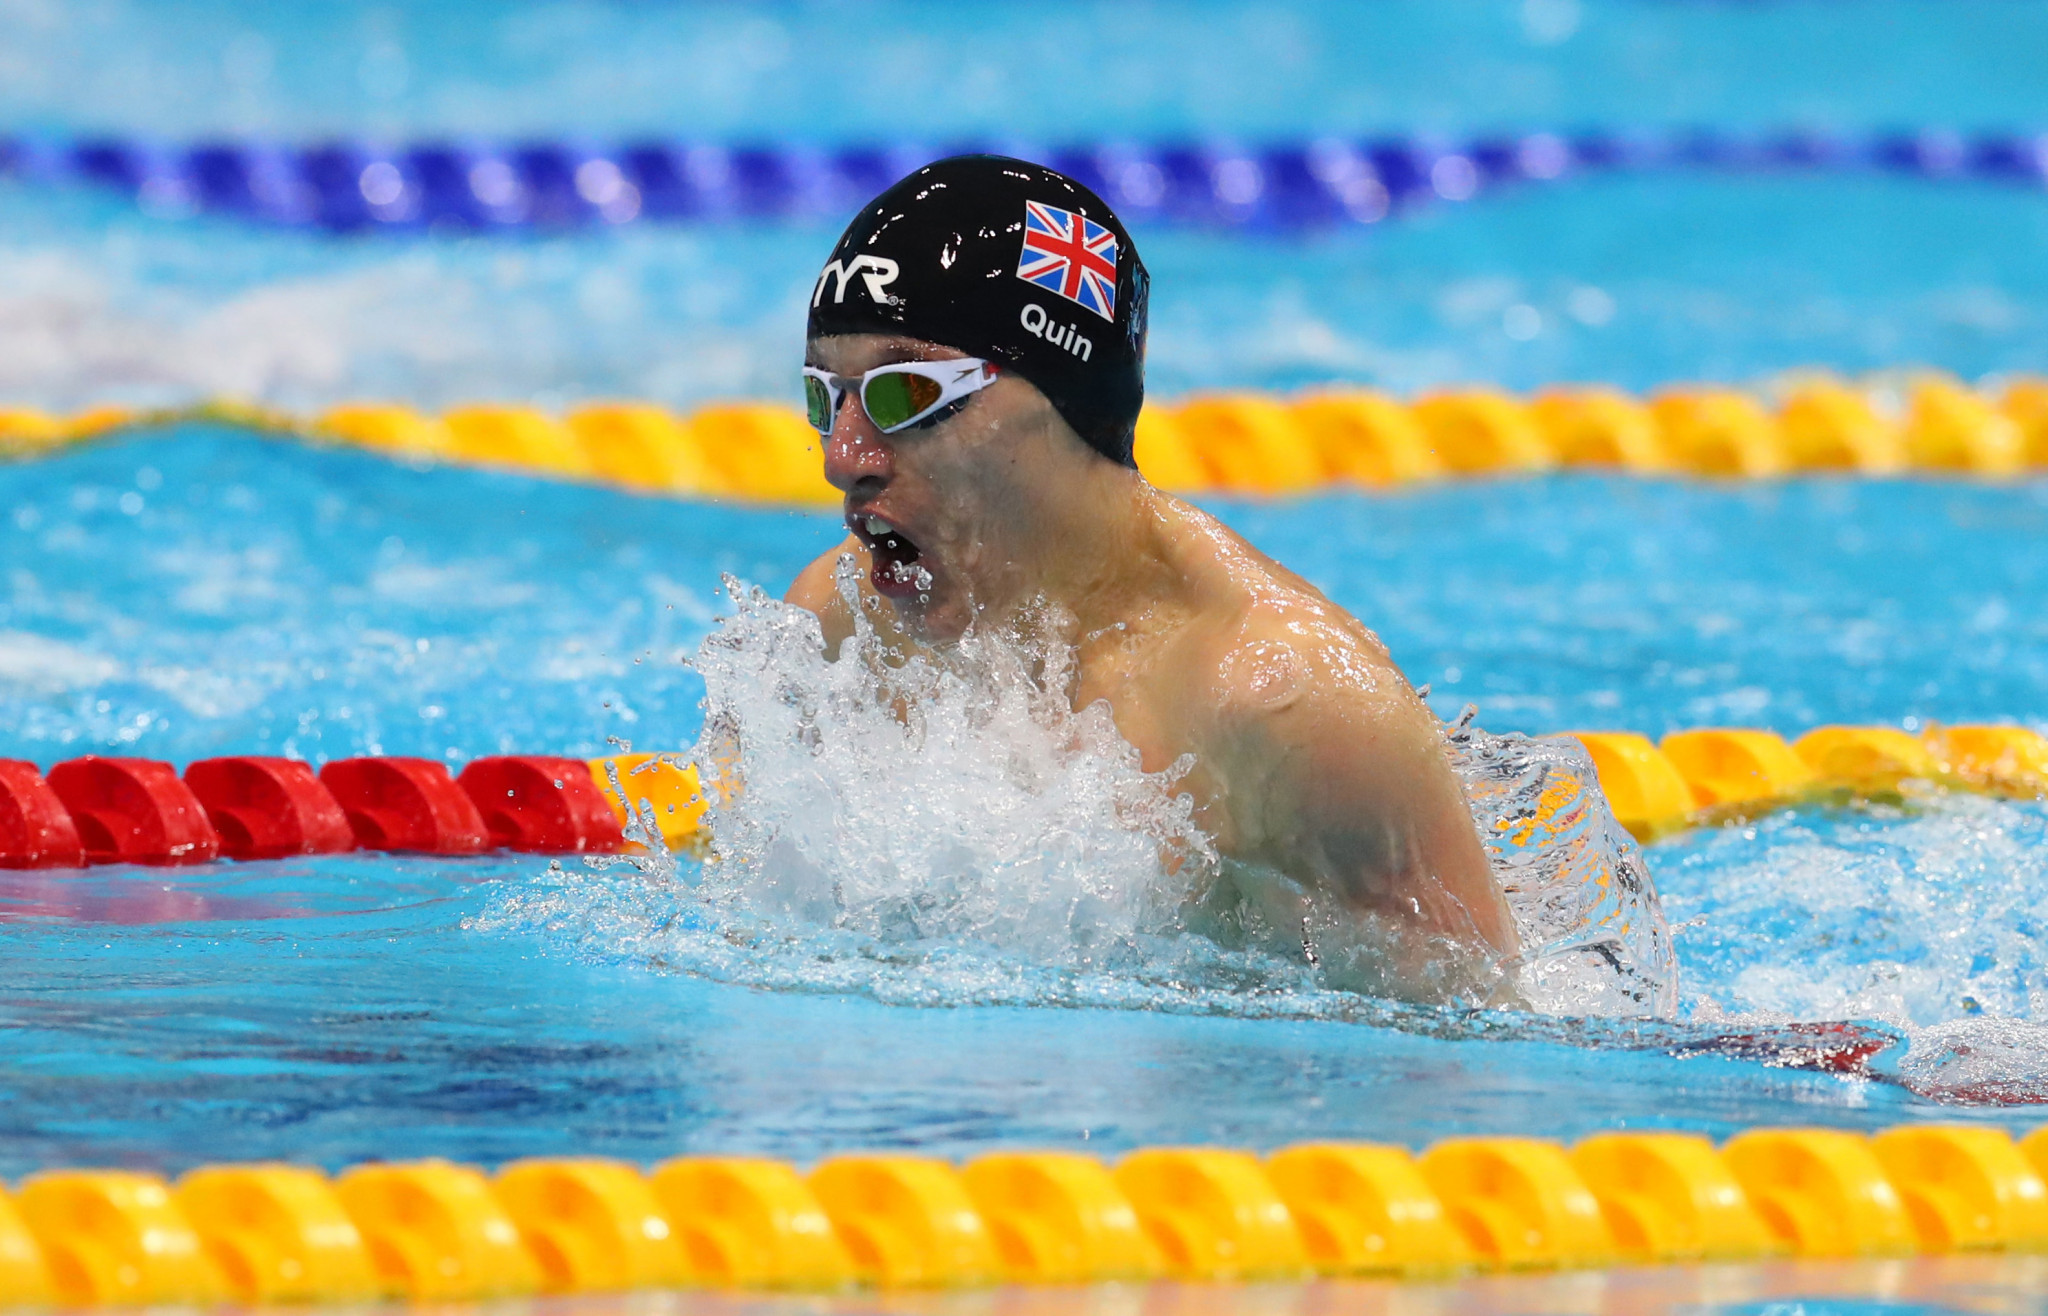 Scott Quin was among a hos of British swimmers to dip below their Paralympic consideration time today ©Getty Images